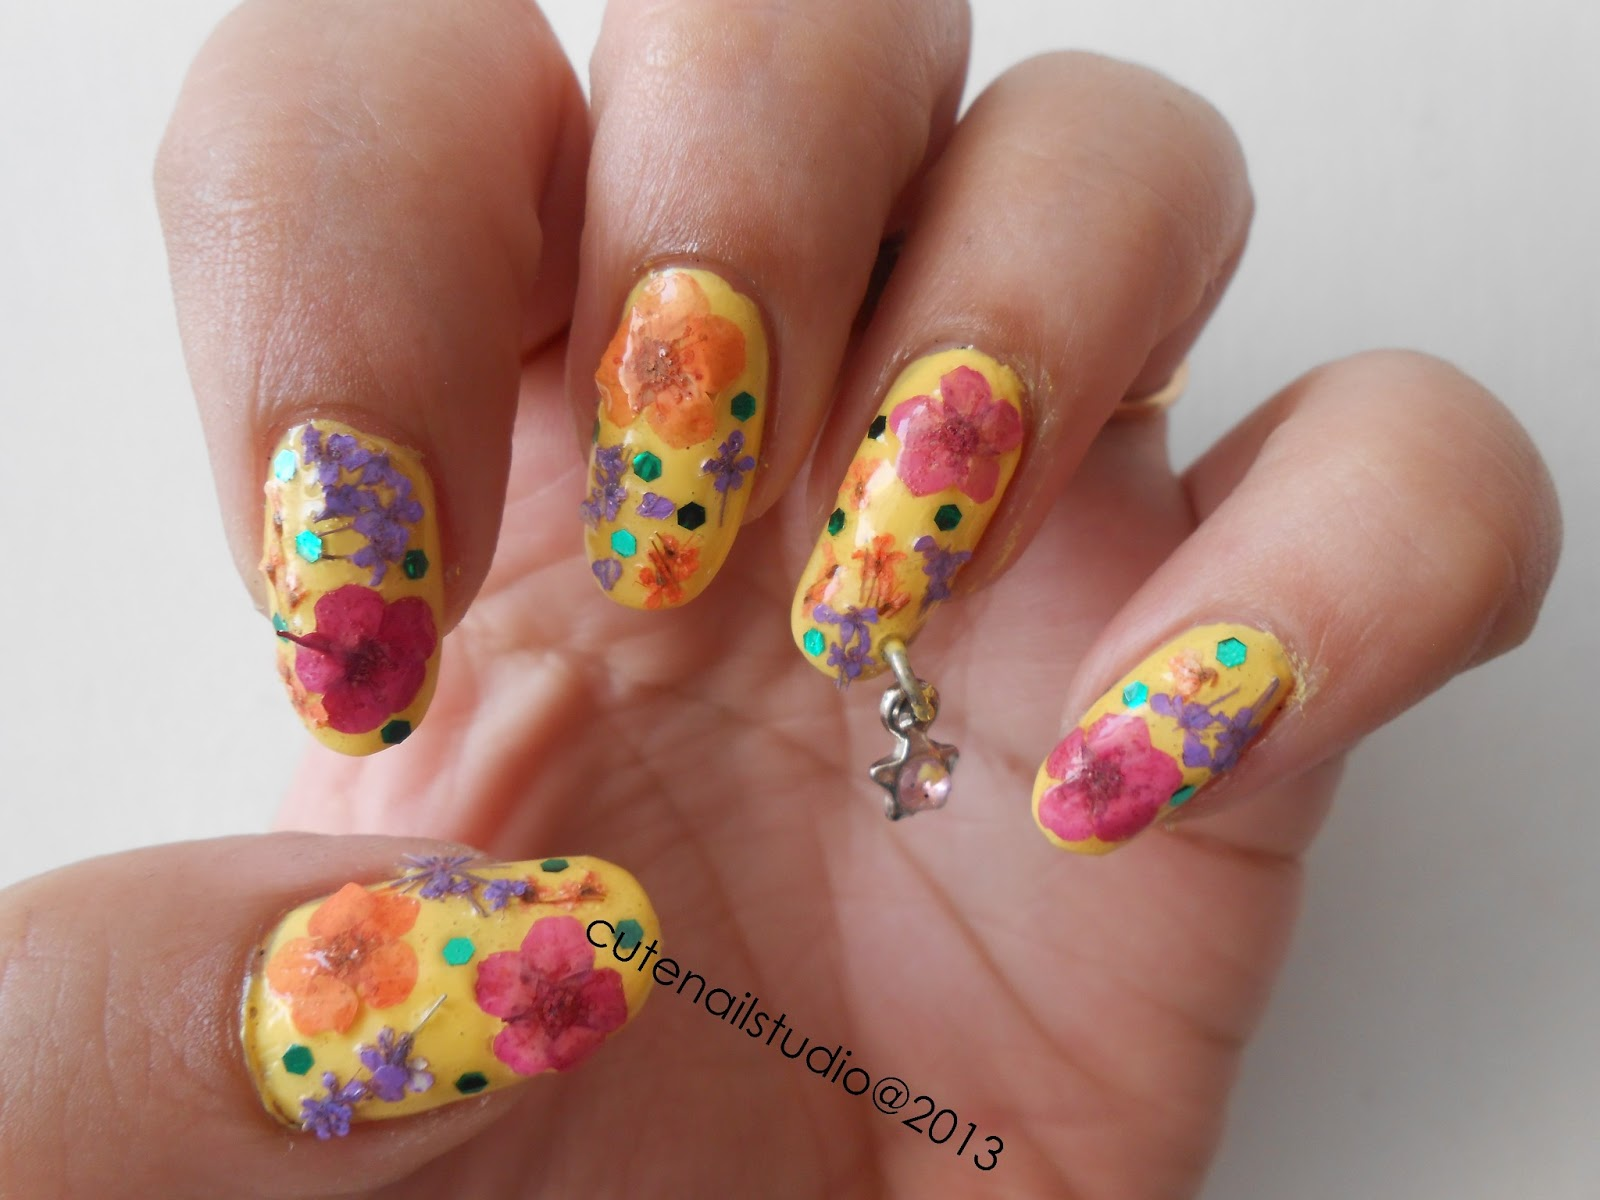 Todays Nail Art Stuff Giveaway - My Own Email